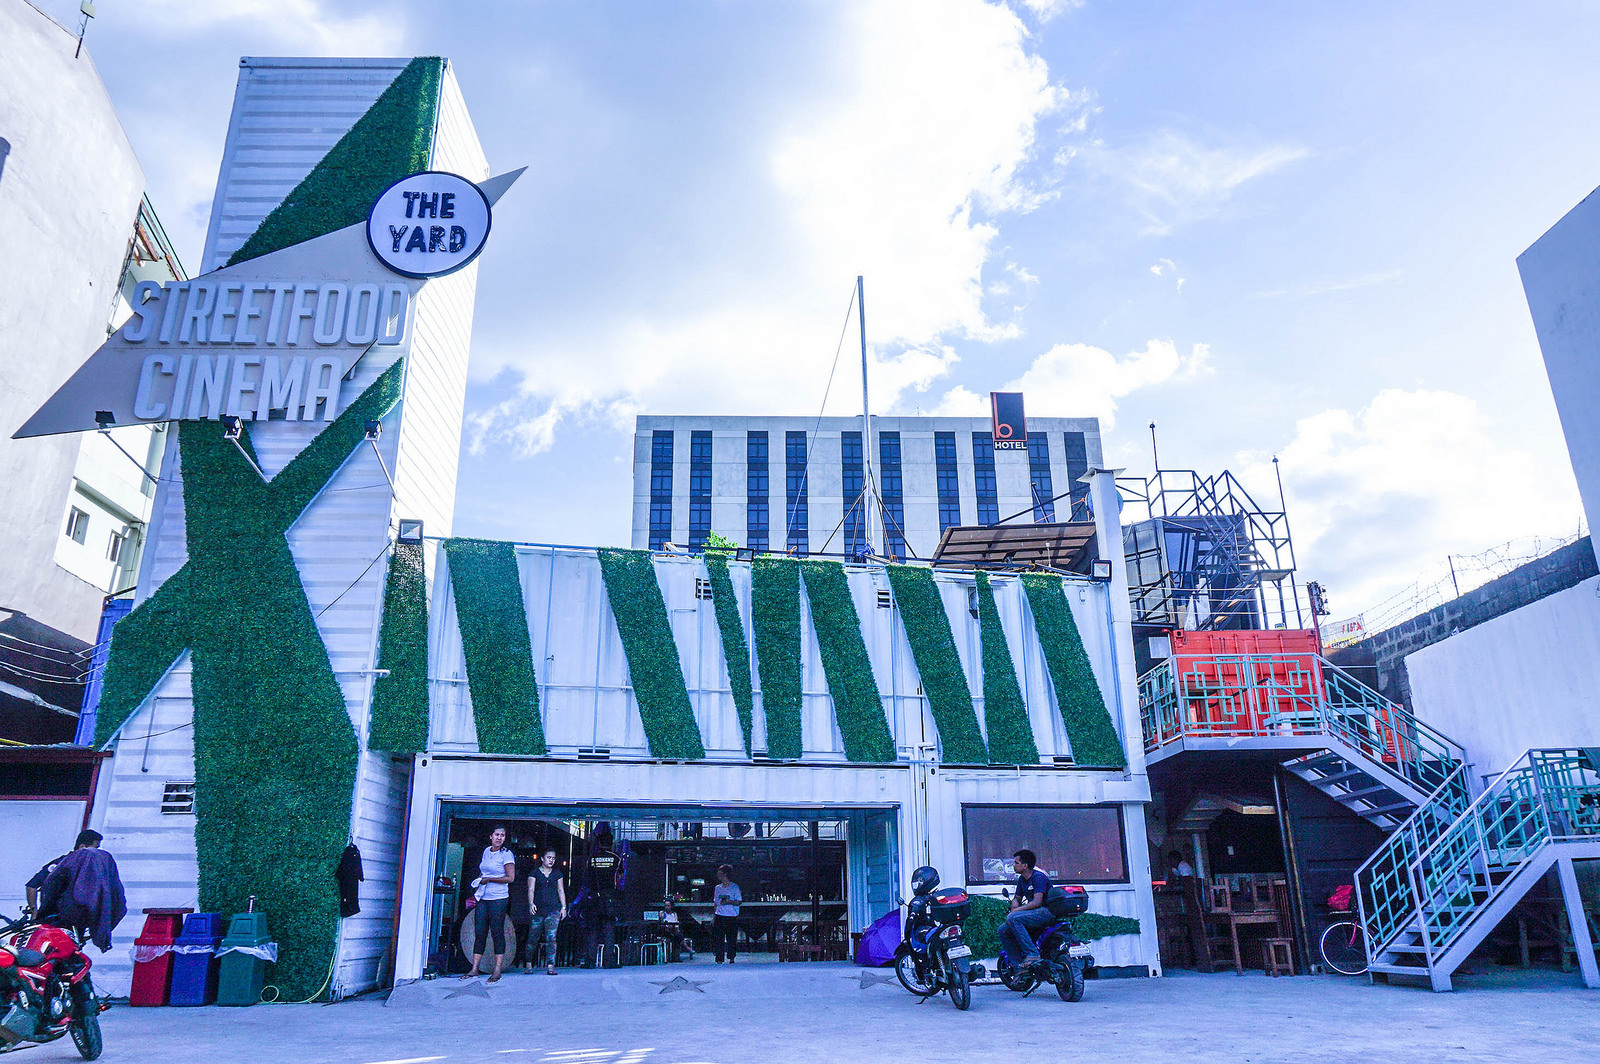 The Yard StreetFood Cinema in Tomas Morato